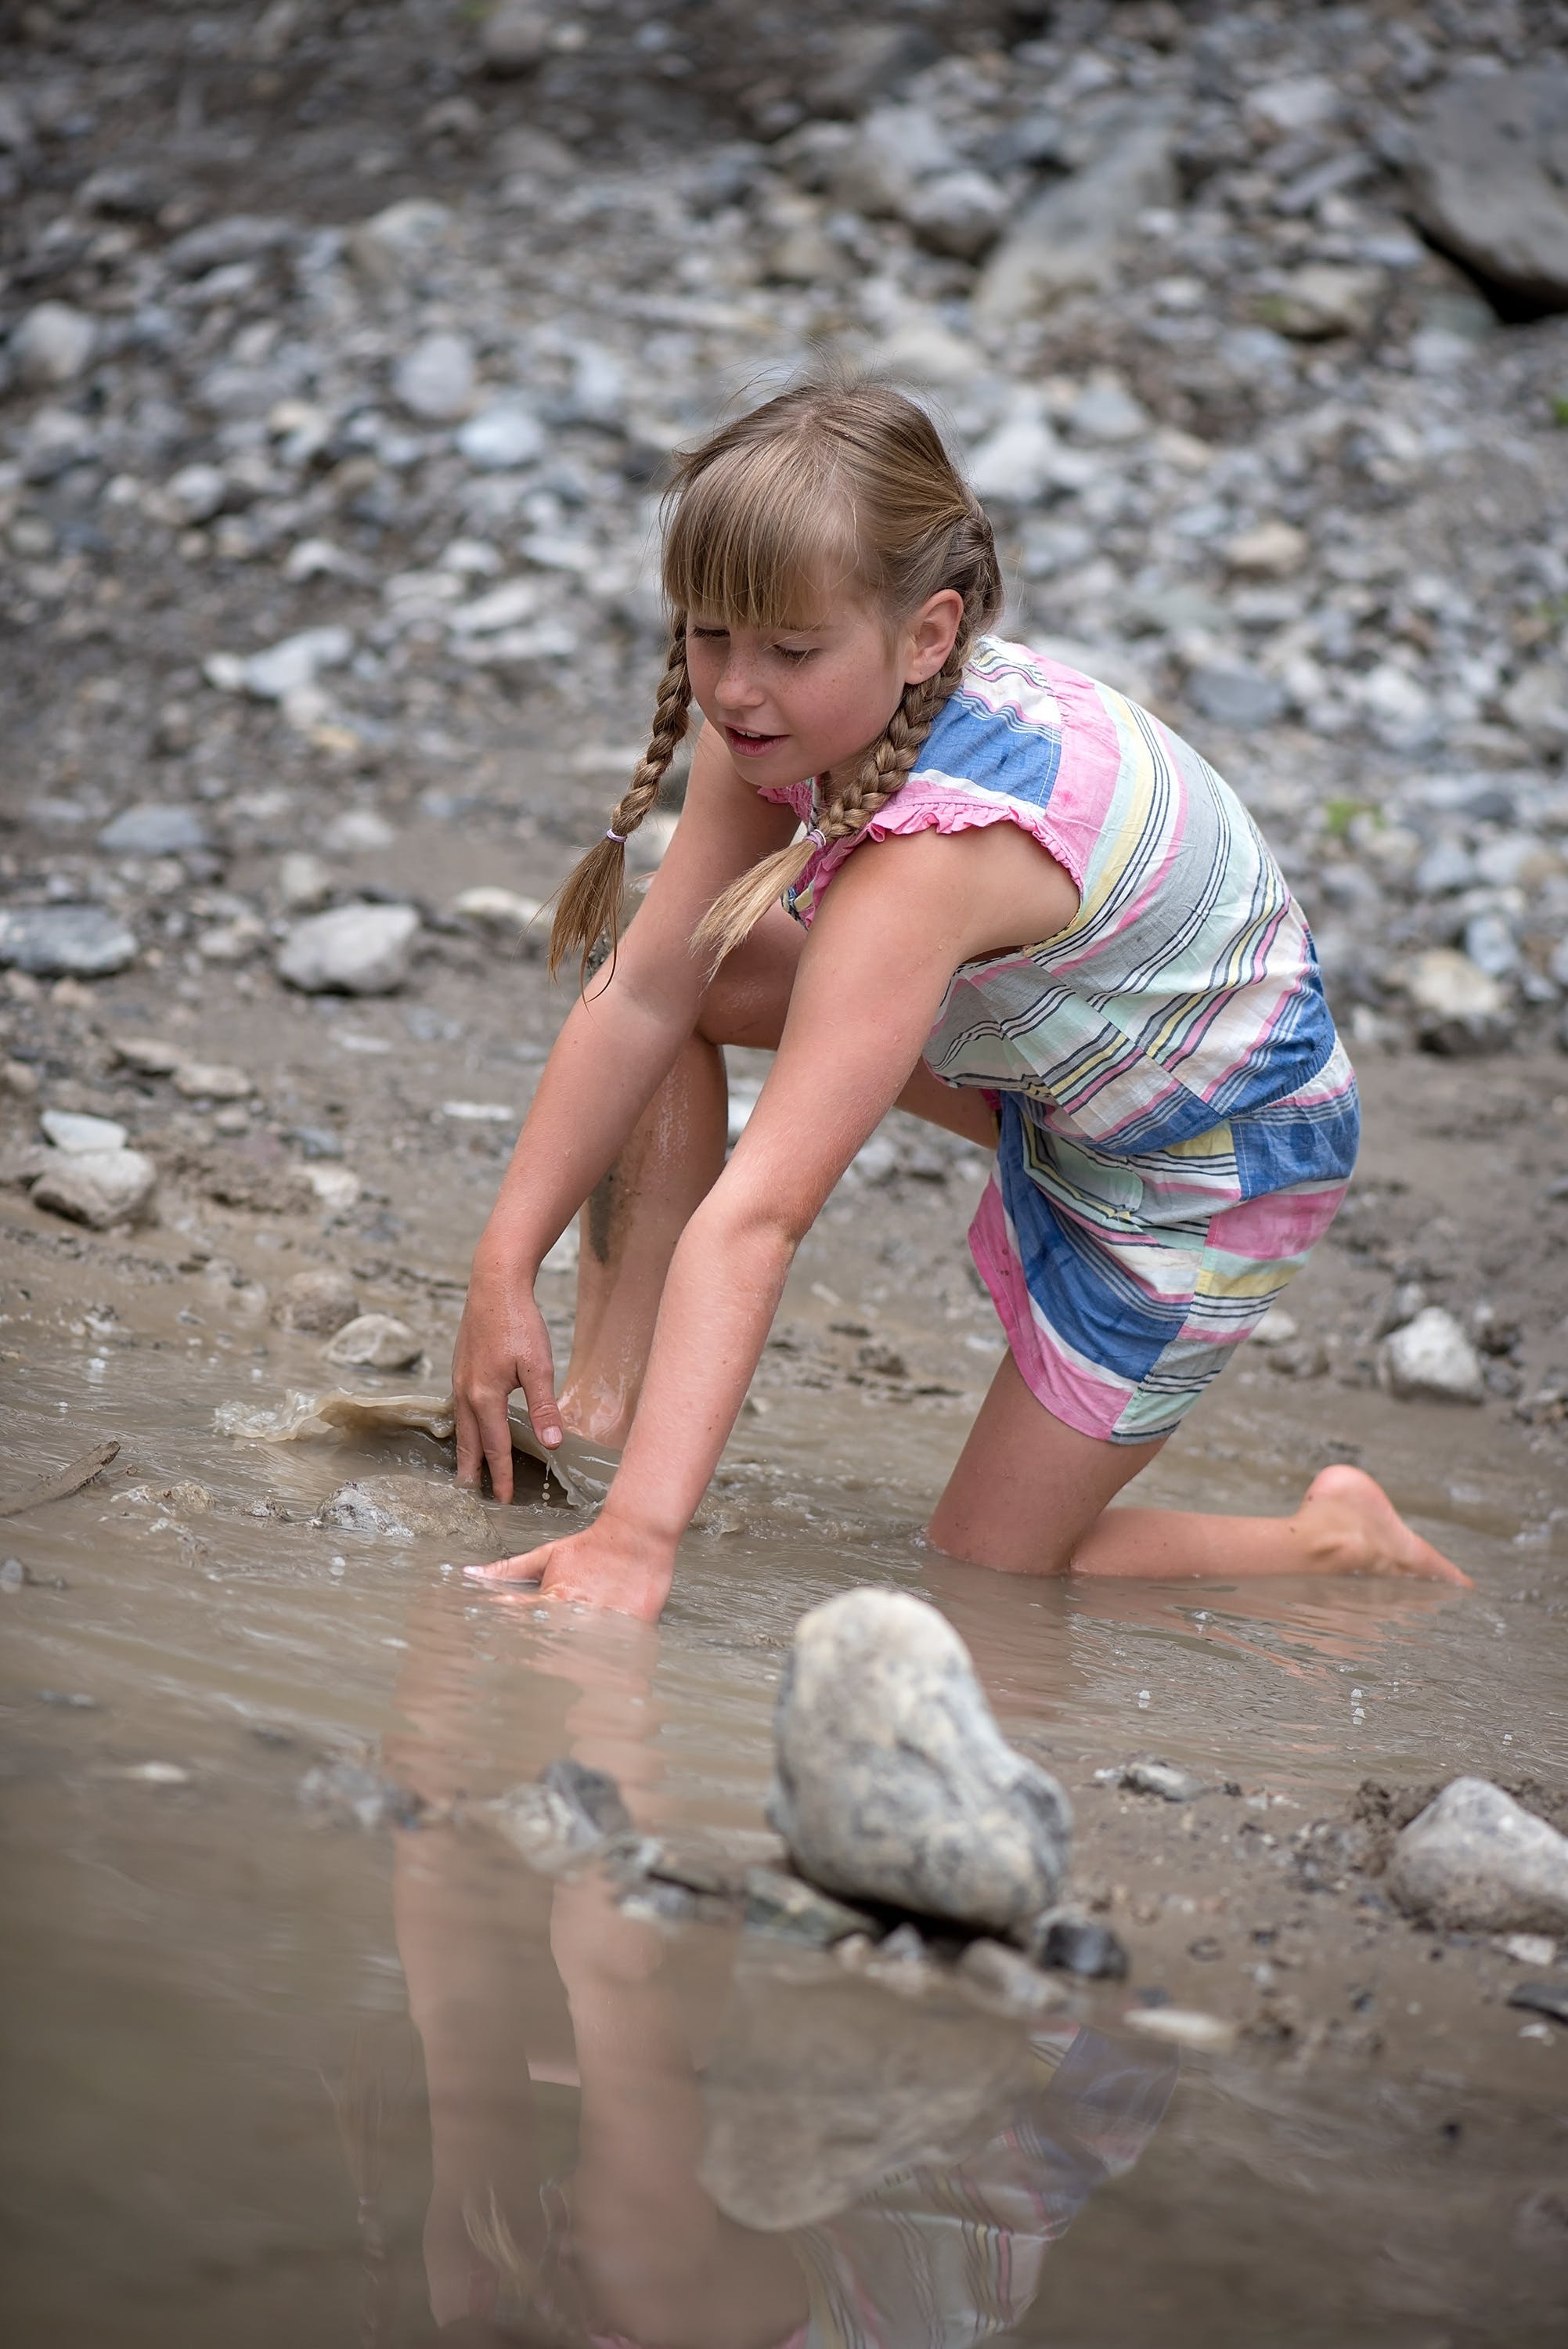 Girl in Pink White and Blue Romper in Body of Water With Gray Rocks